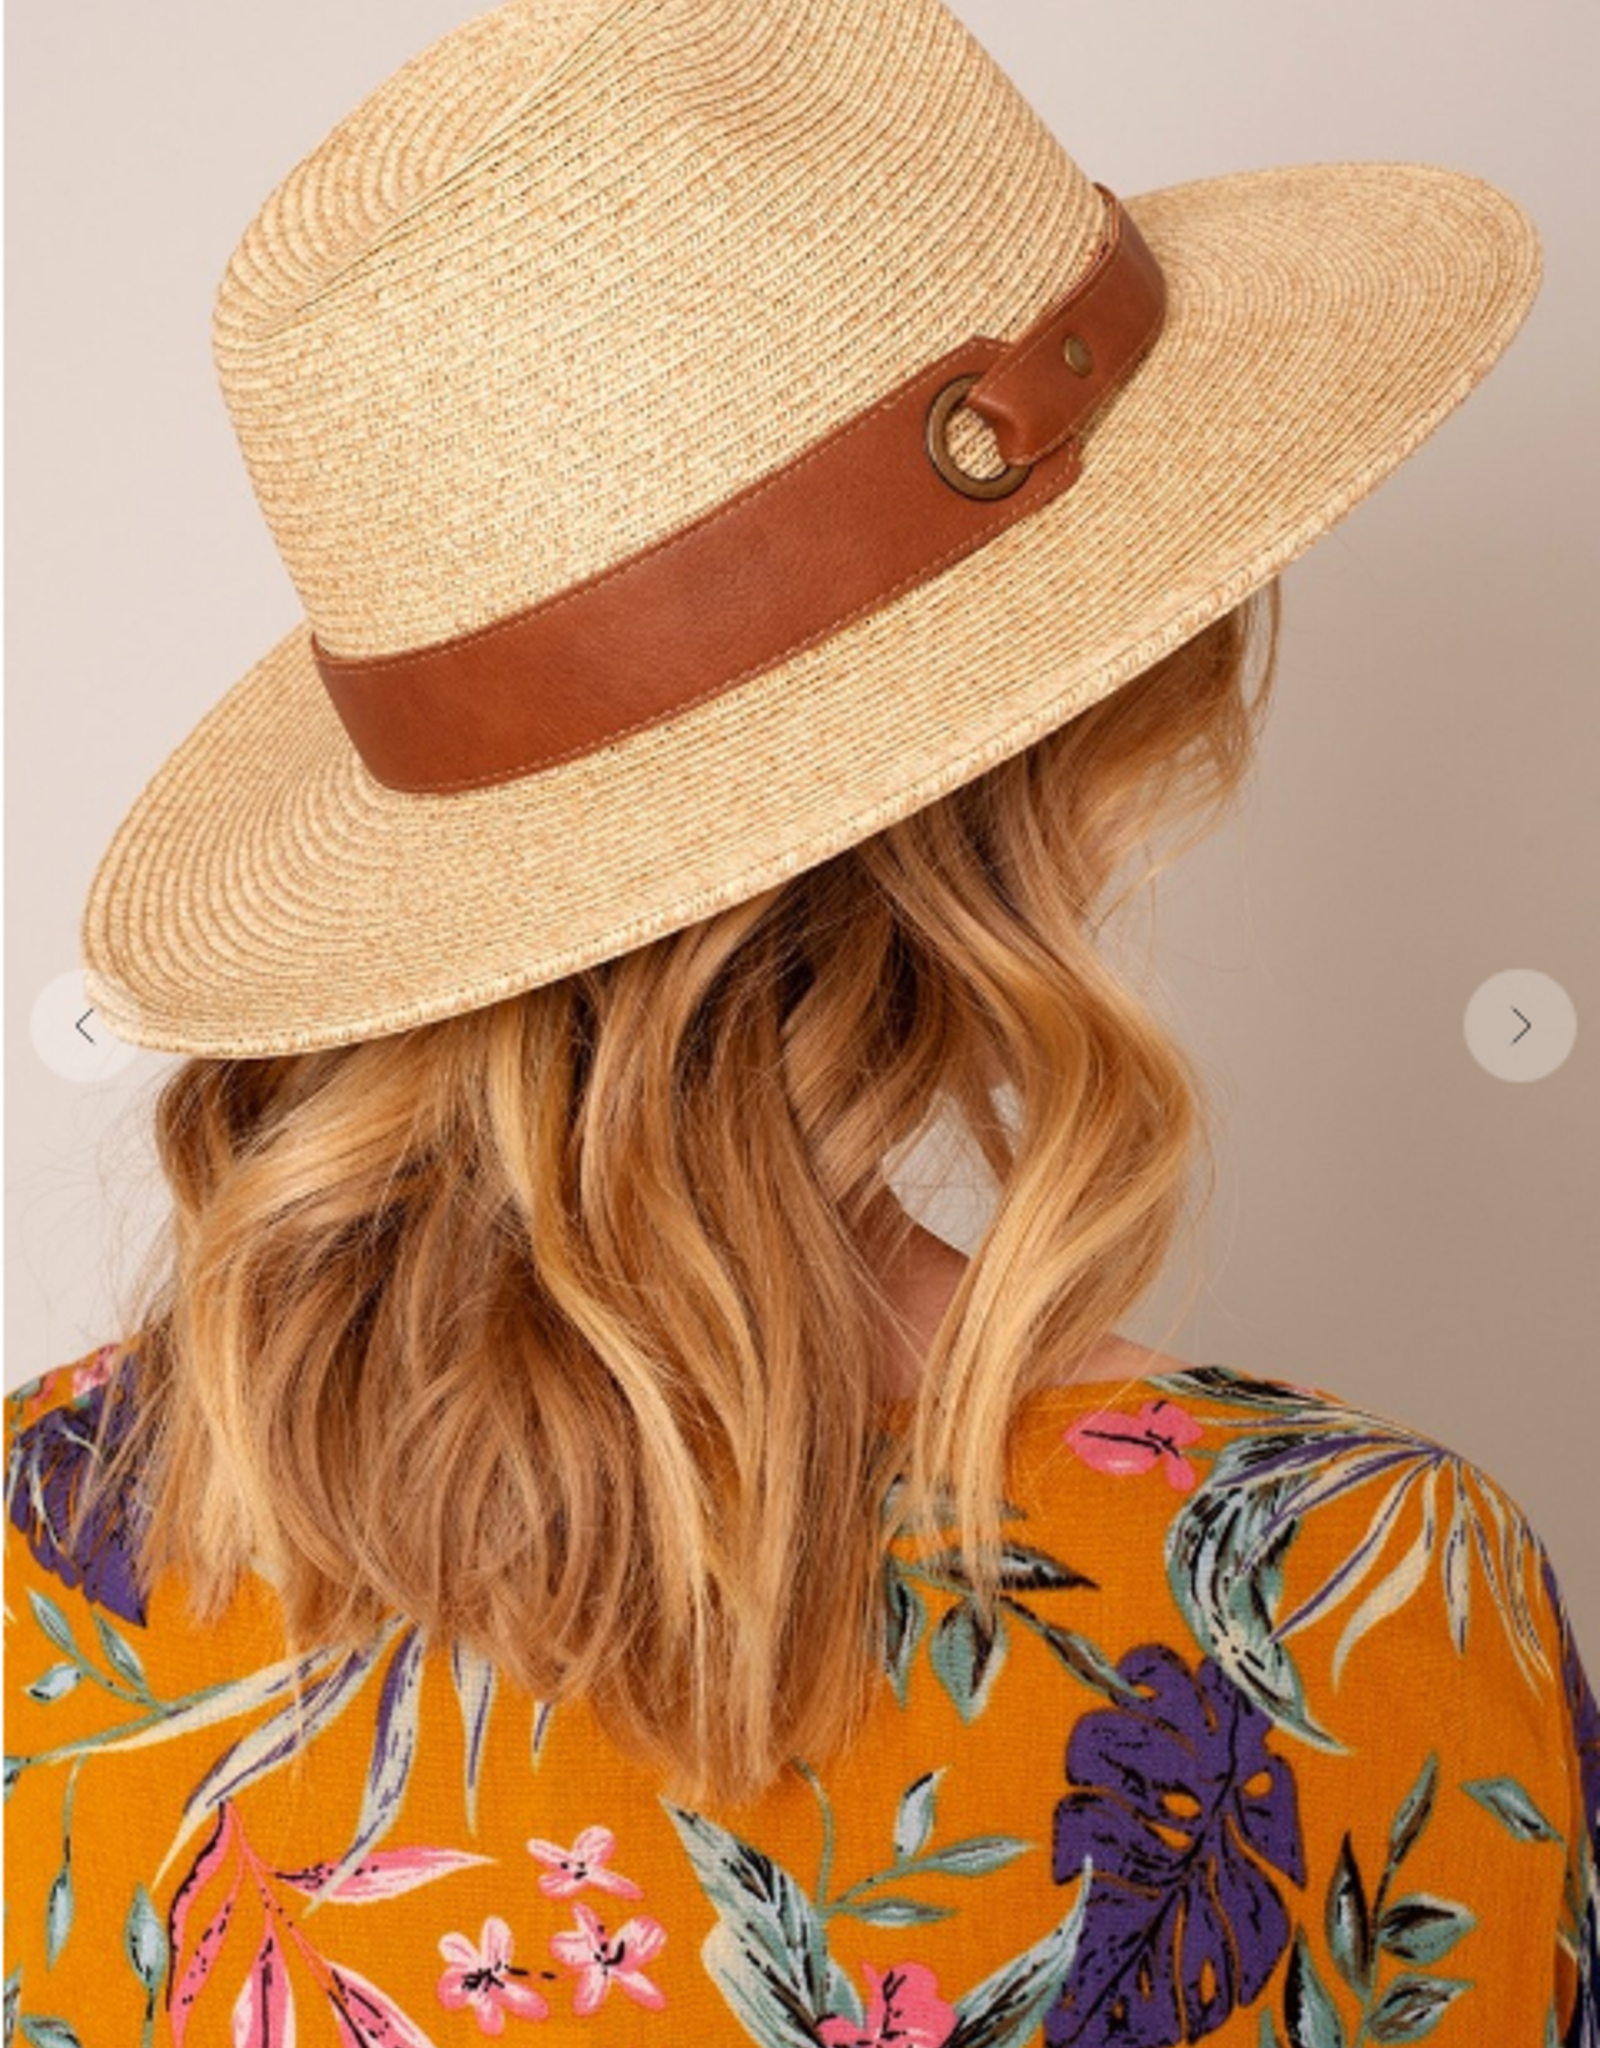 Wink Panama Hat with Leather Grommet Band